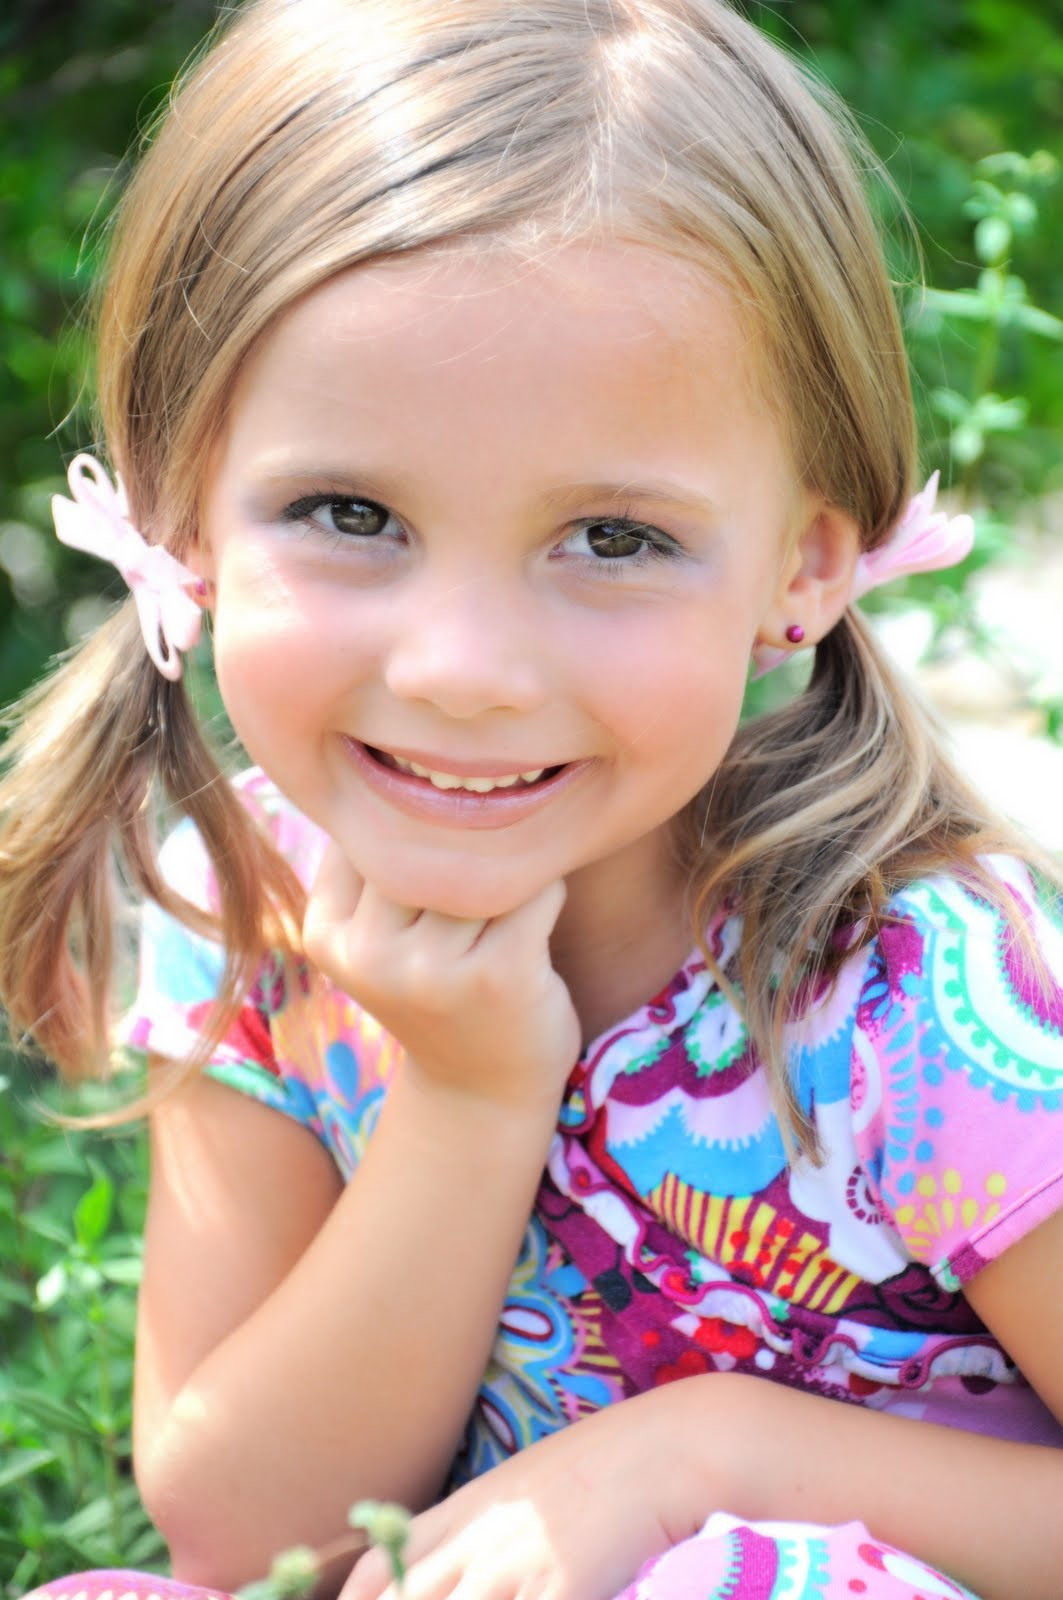 Little Girls Nails And Girls On Pinterest: Vanity Studios: My Beautiful Little Girl